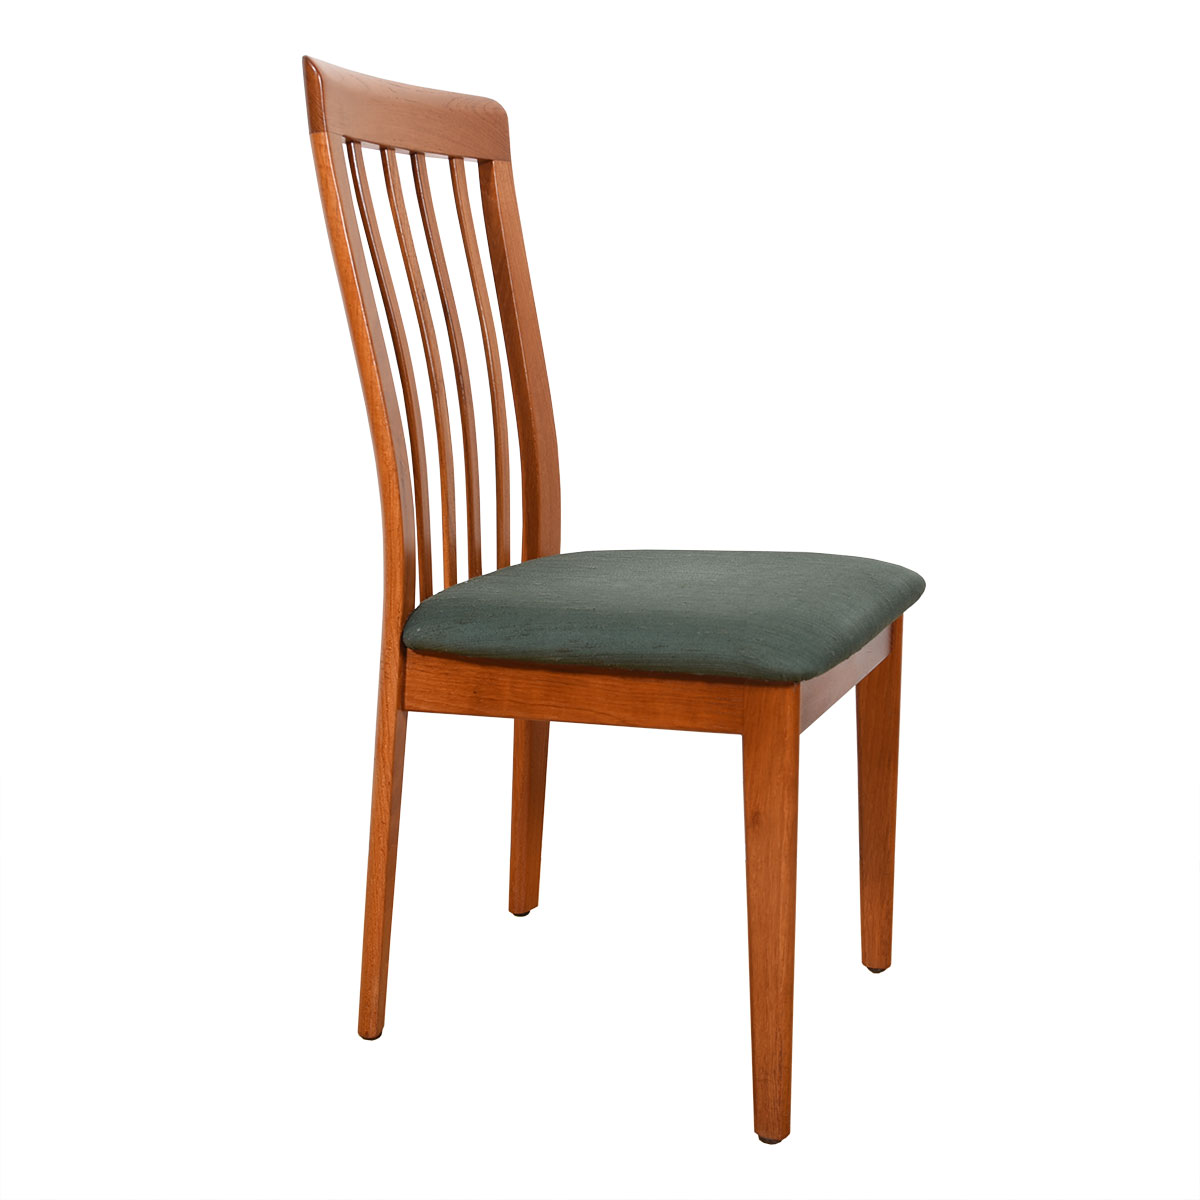 Set of 8 Tall Teak Canadian Modern Dining Chairs